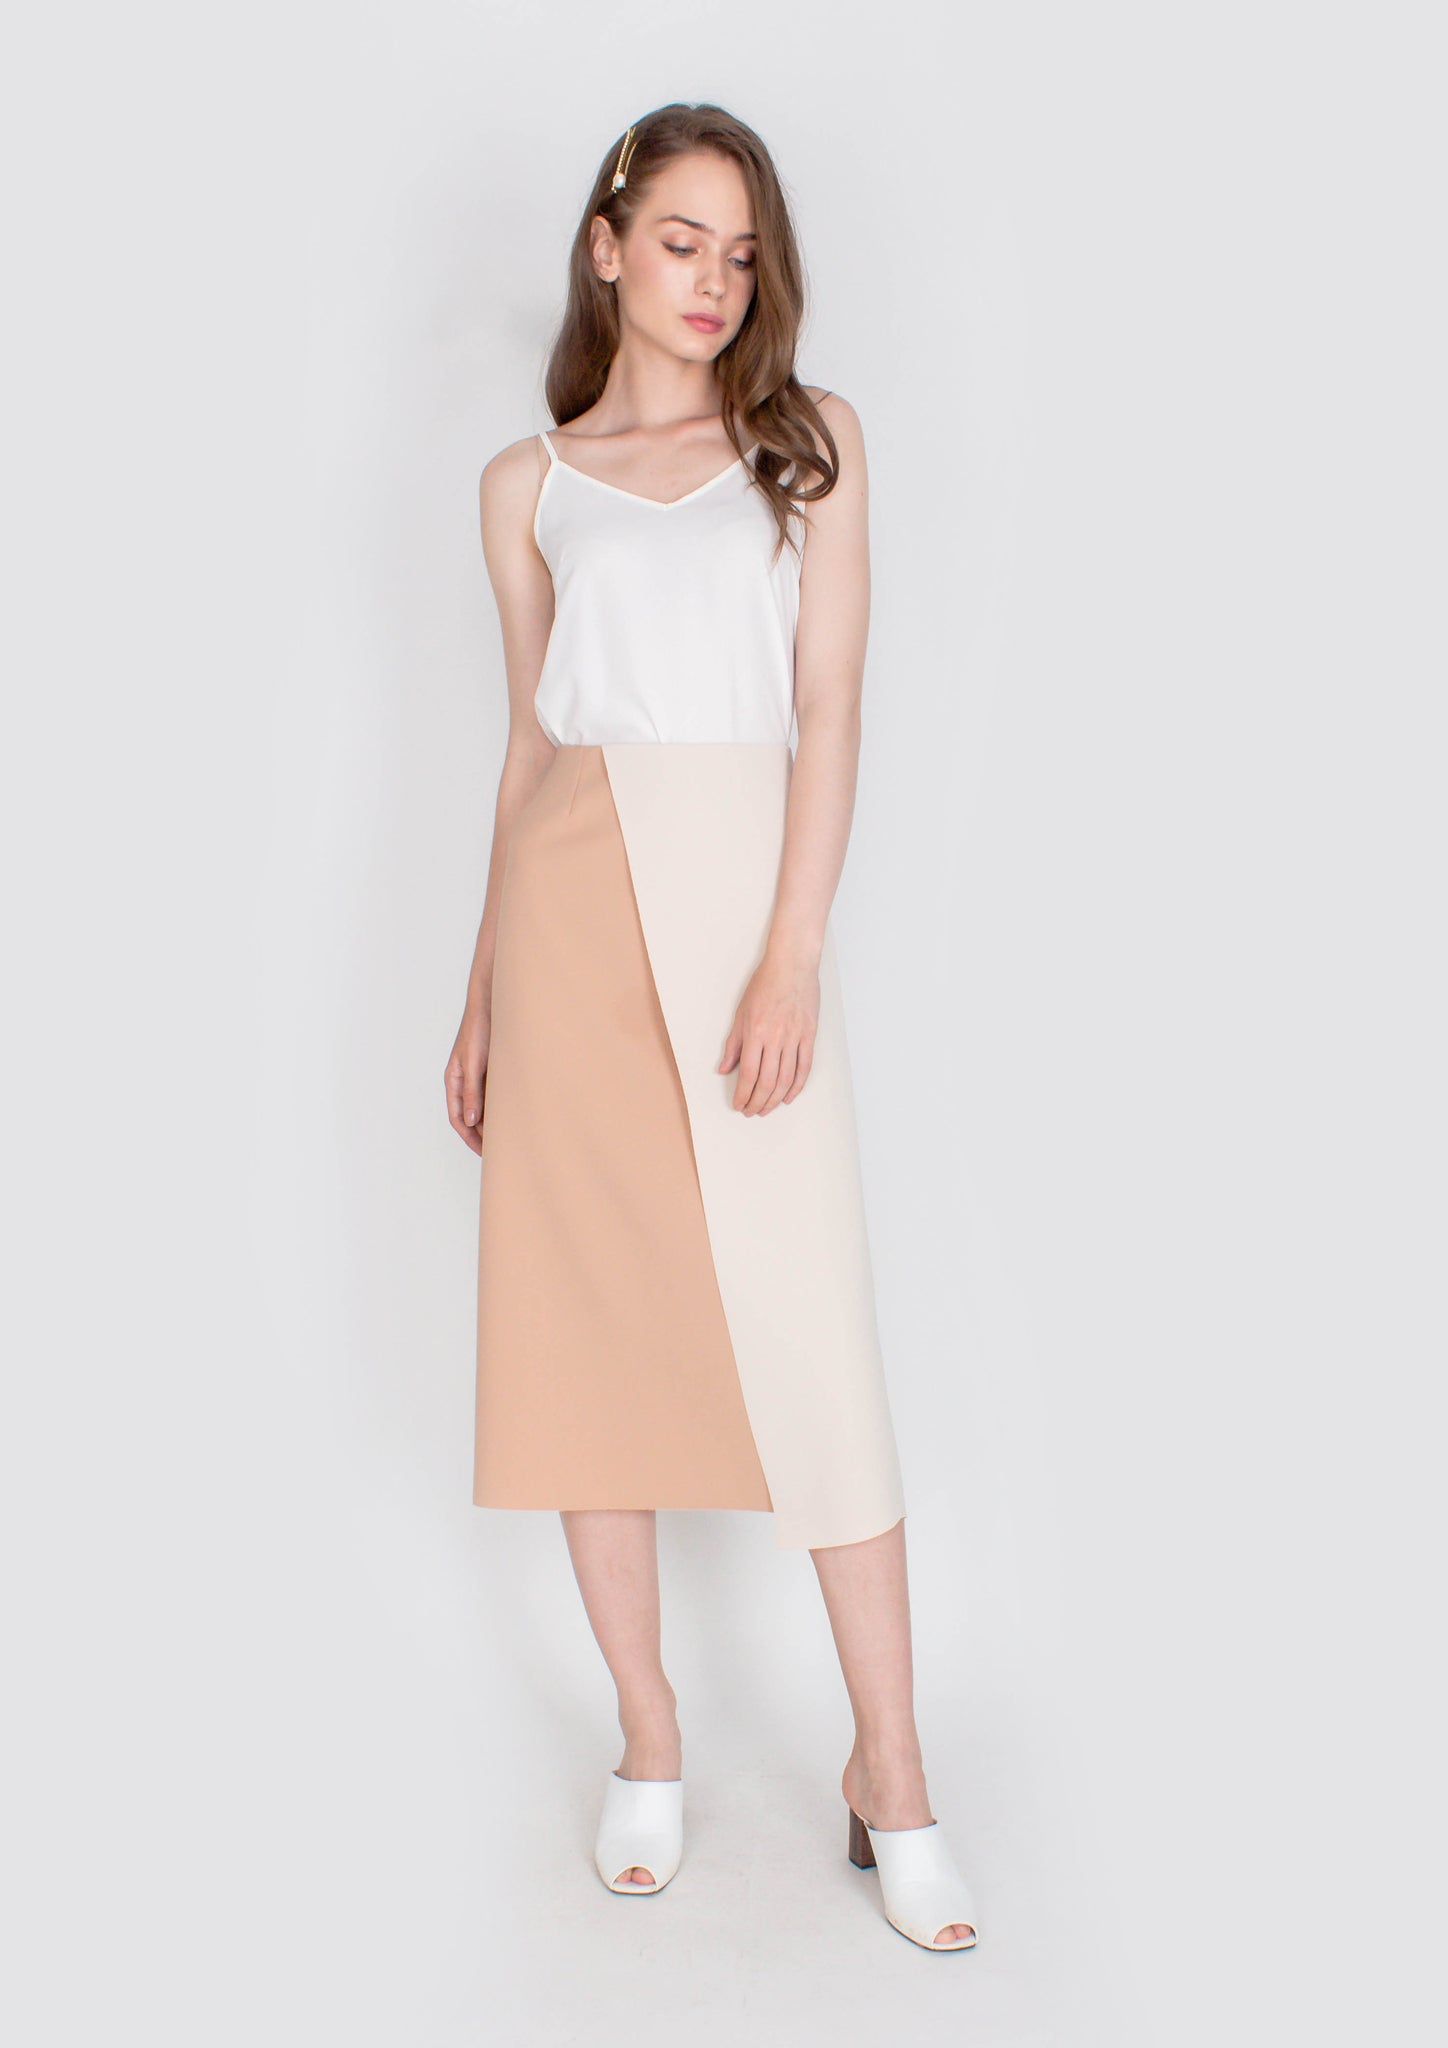 Chic Colourblock Midi Skirt (Cream and Caramel) - Moxie